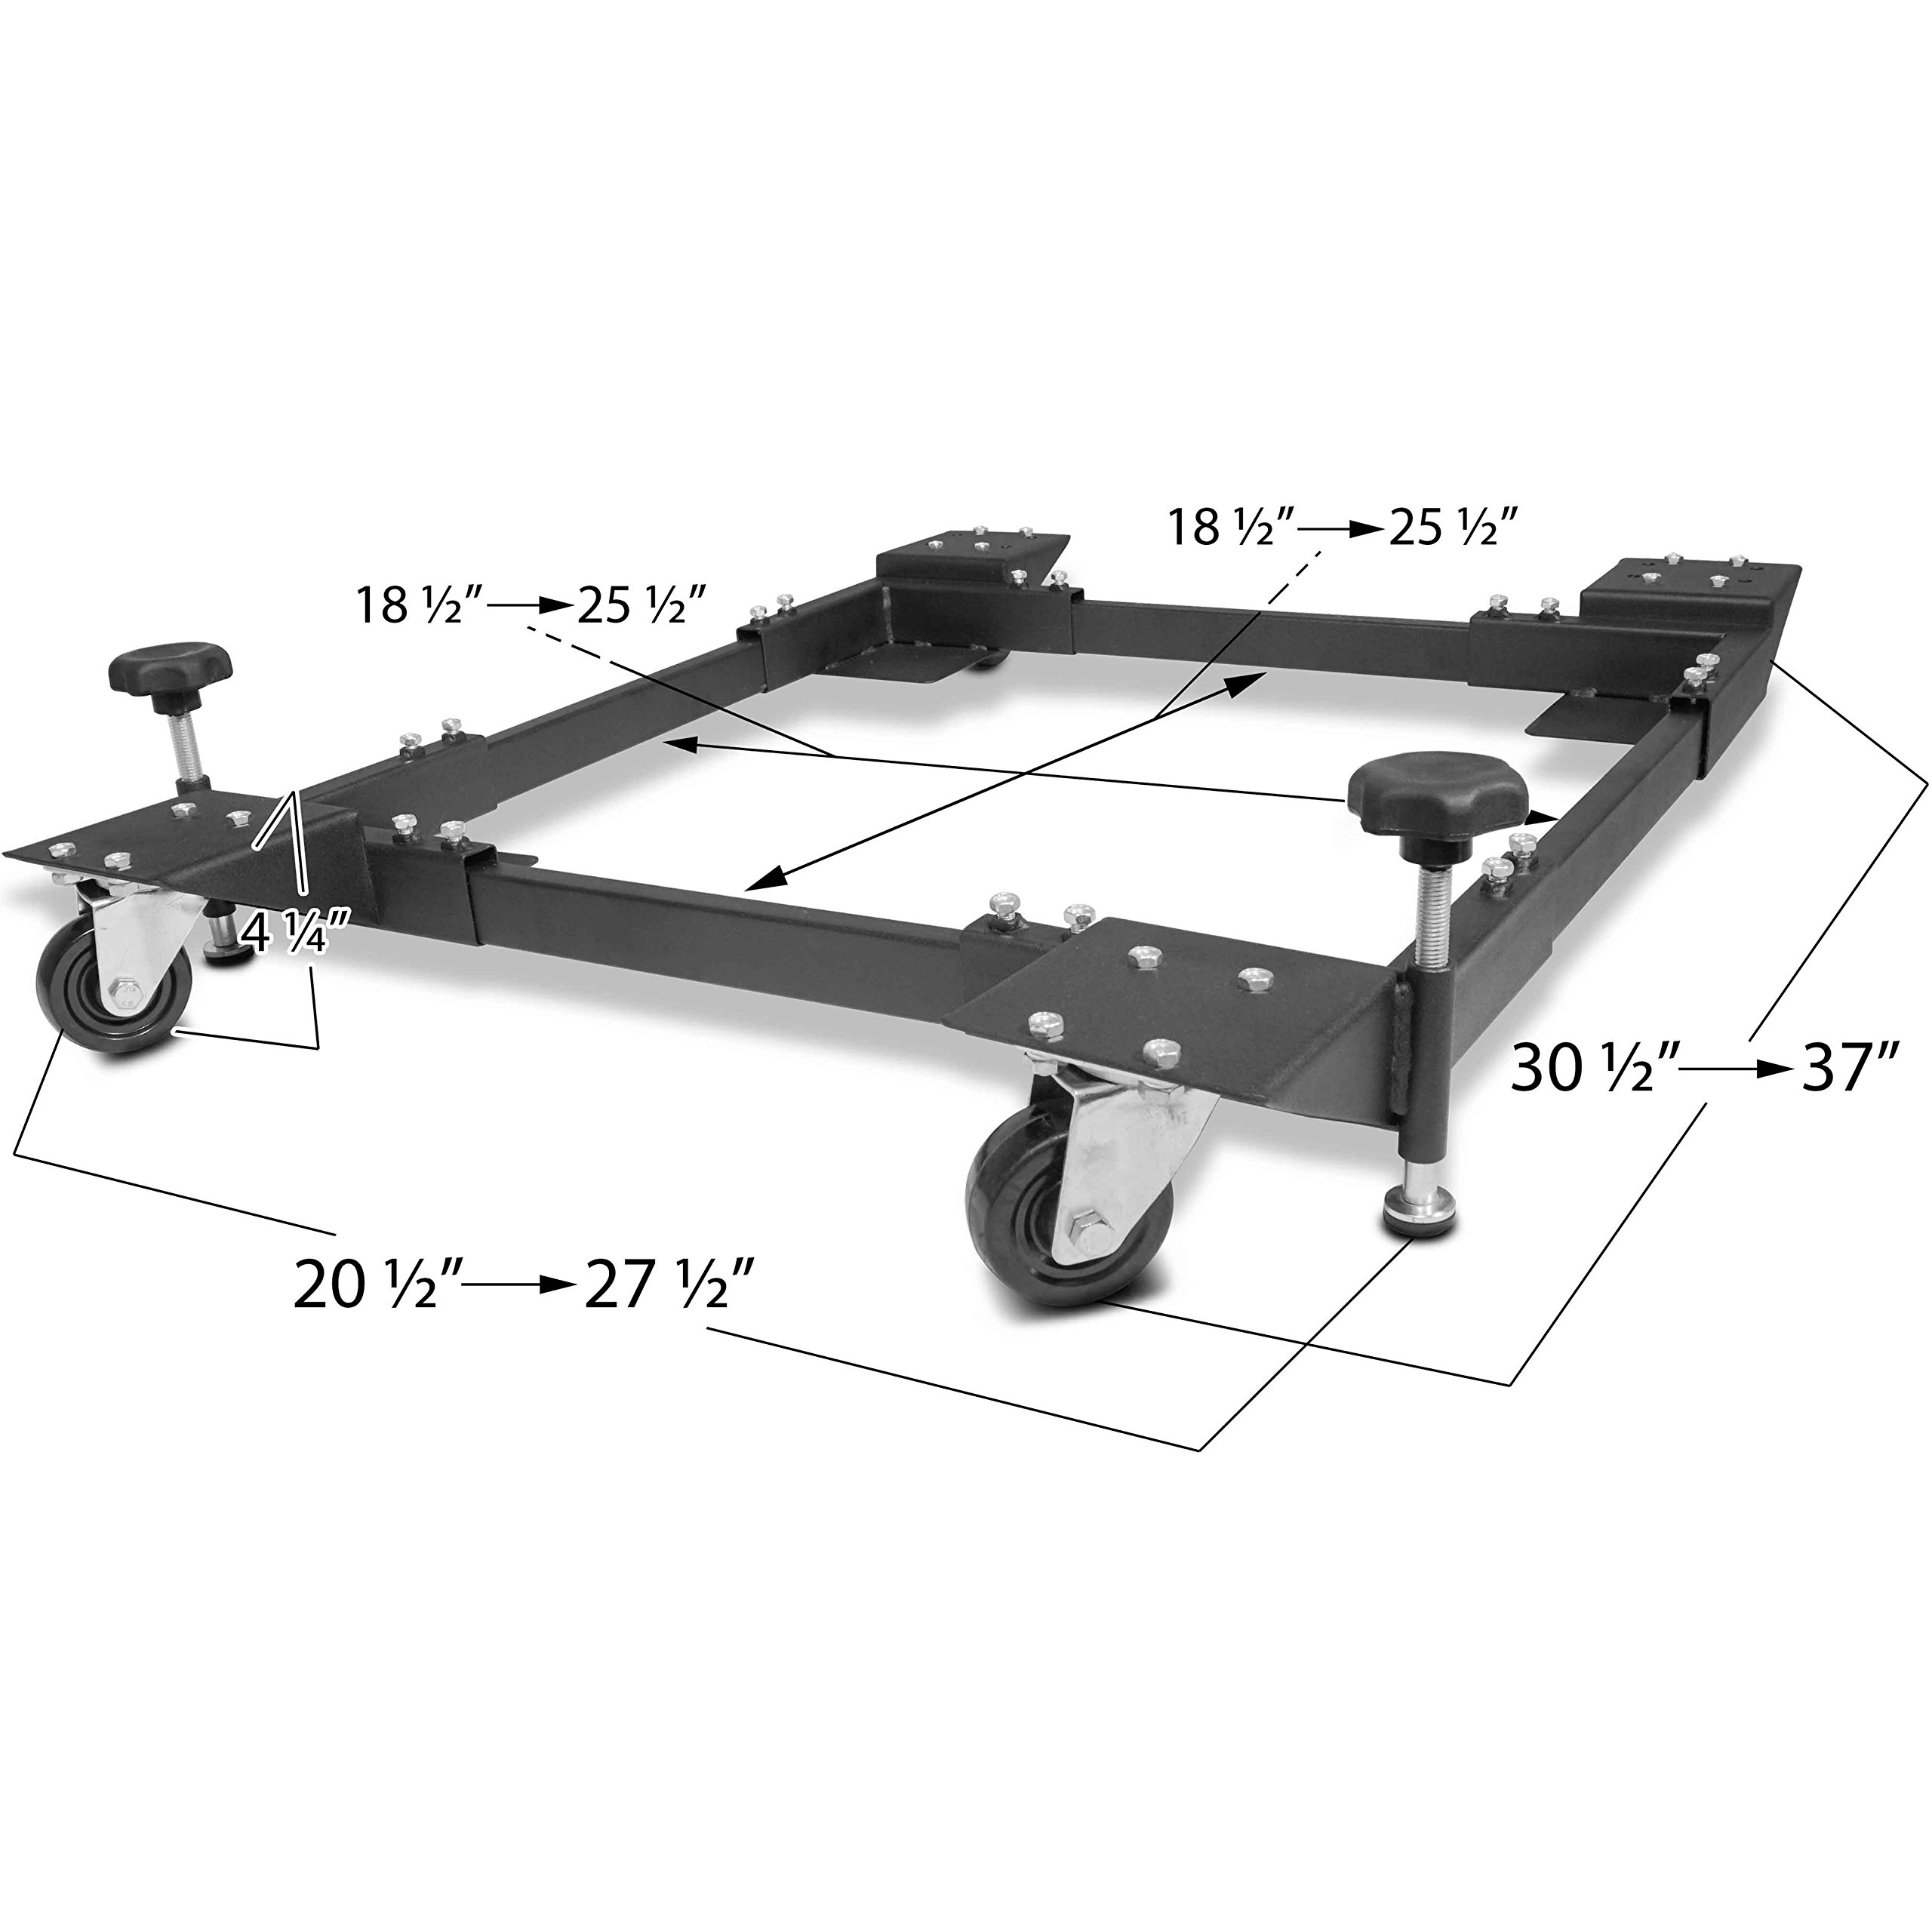 Titan Adjustable Mobile Base Dolly 600 lb Capacity HD Universal Power Tools - Make Your Workshop Portable & Easy To Use by Titan Attachments (Image #1)